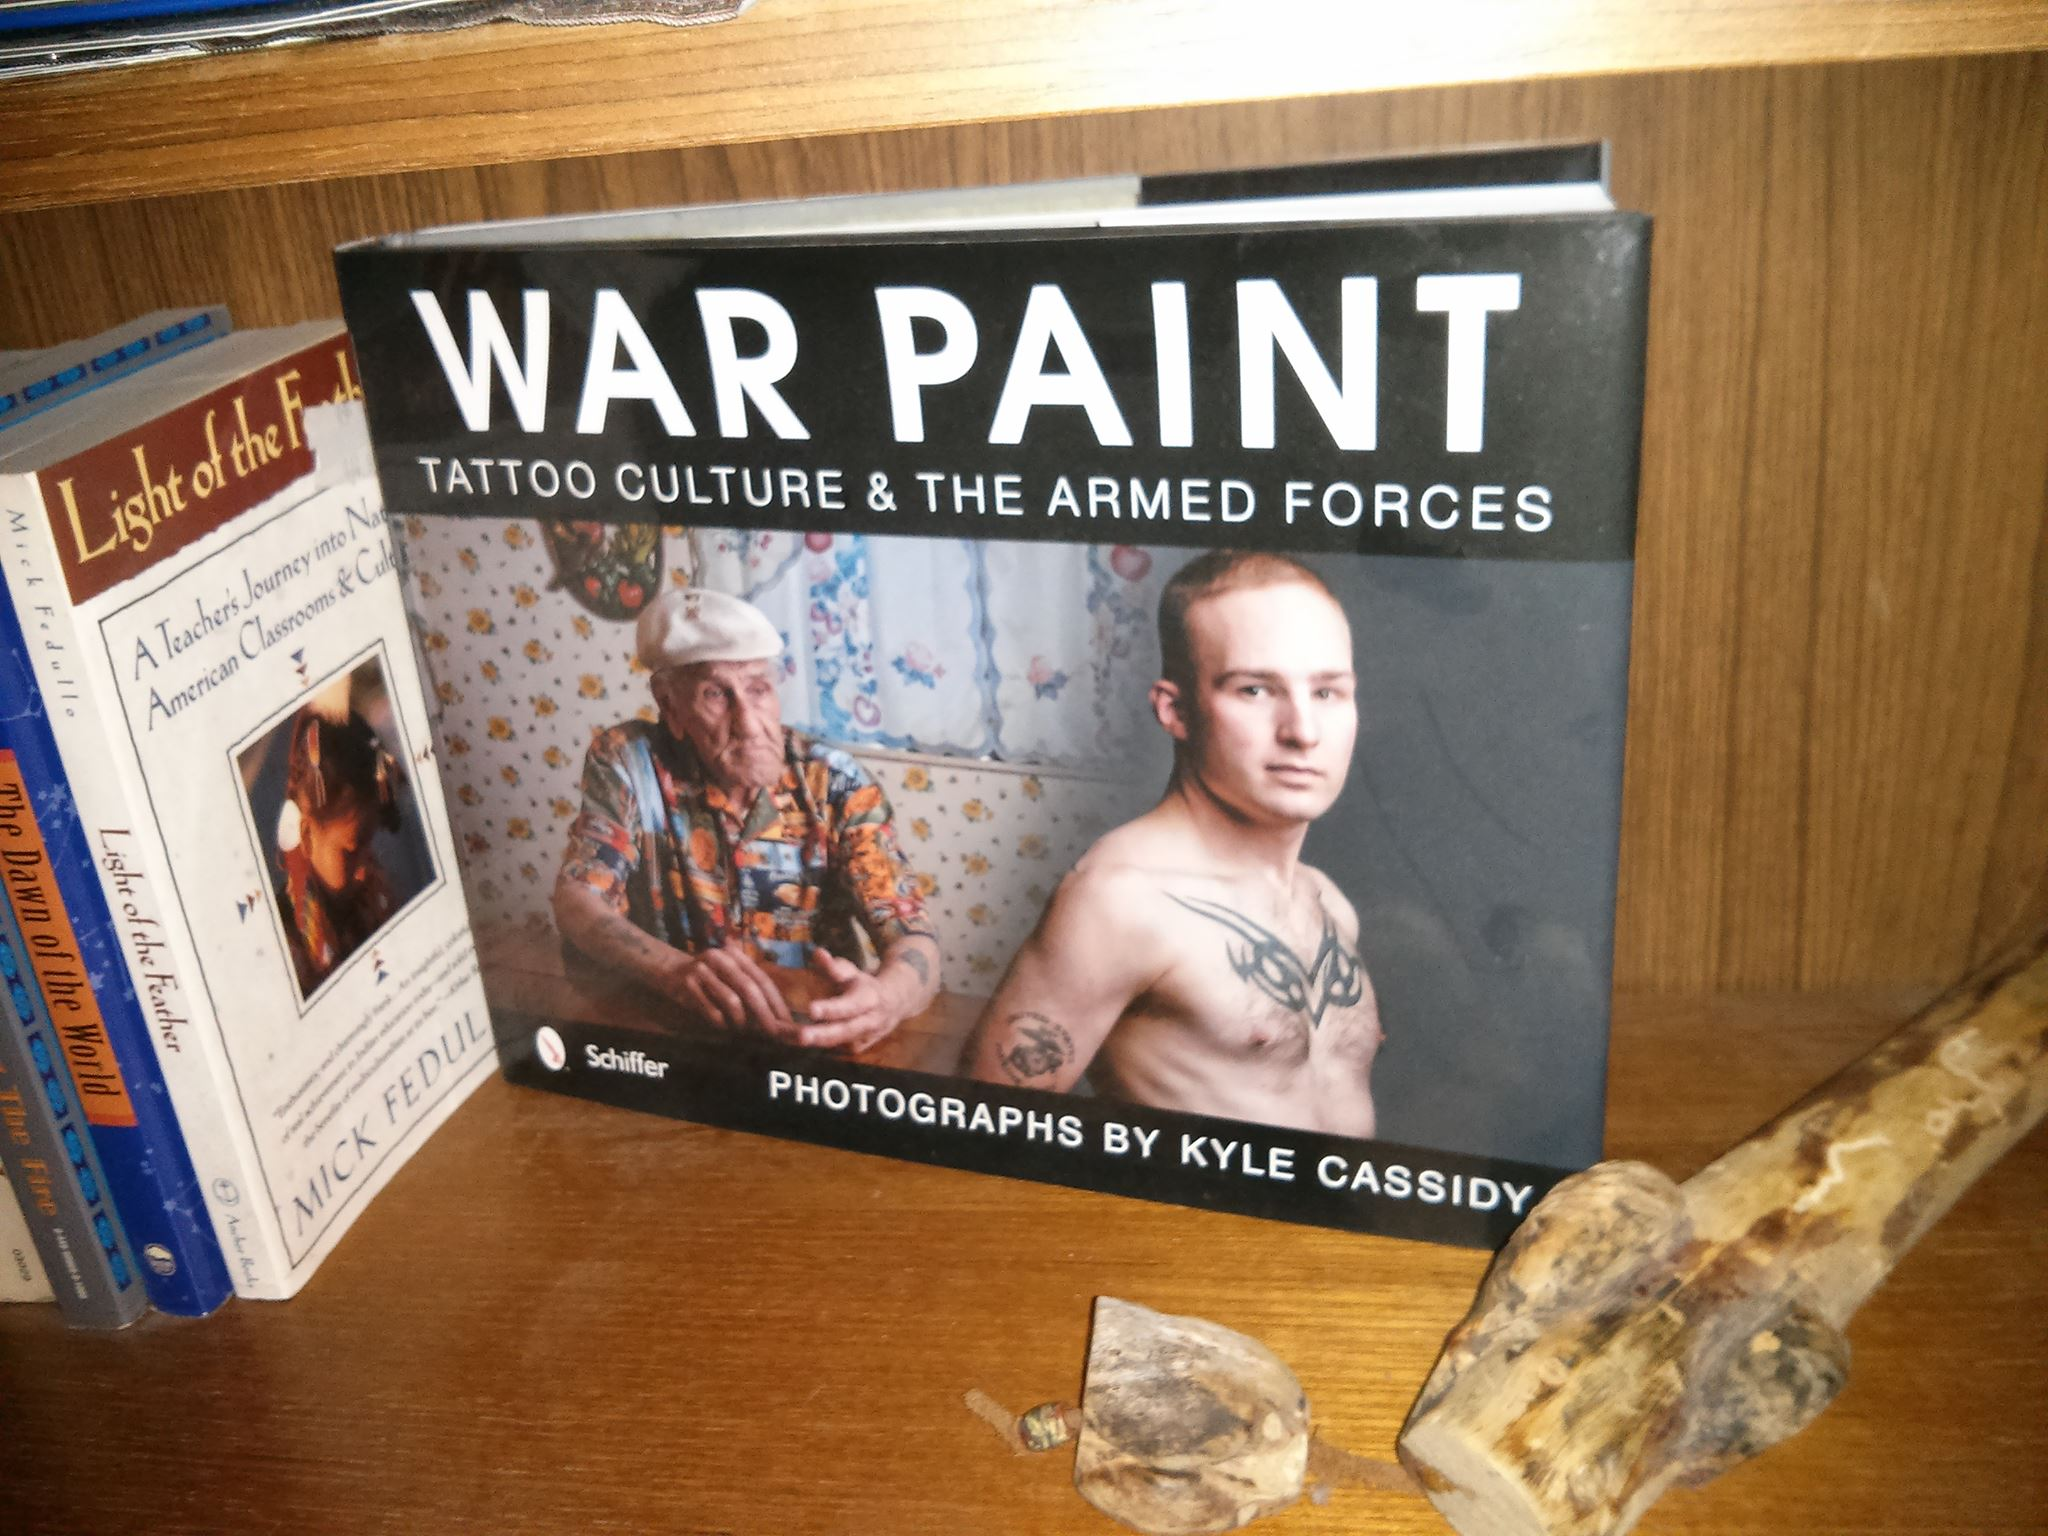 Another of Kyle Cassidy's great works that get people talking. Yes, that's a Tribal Talking Stick sitting next to it on my bookshelf.